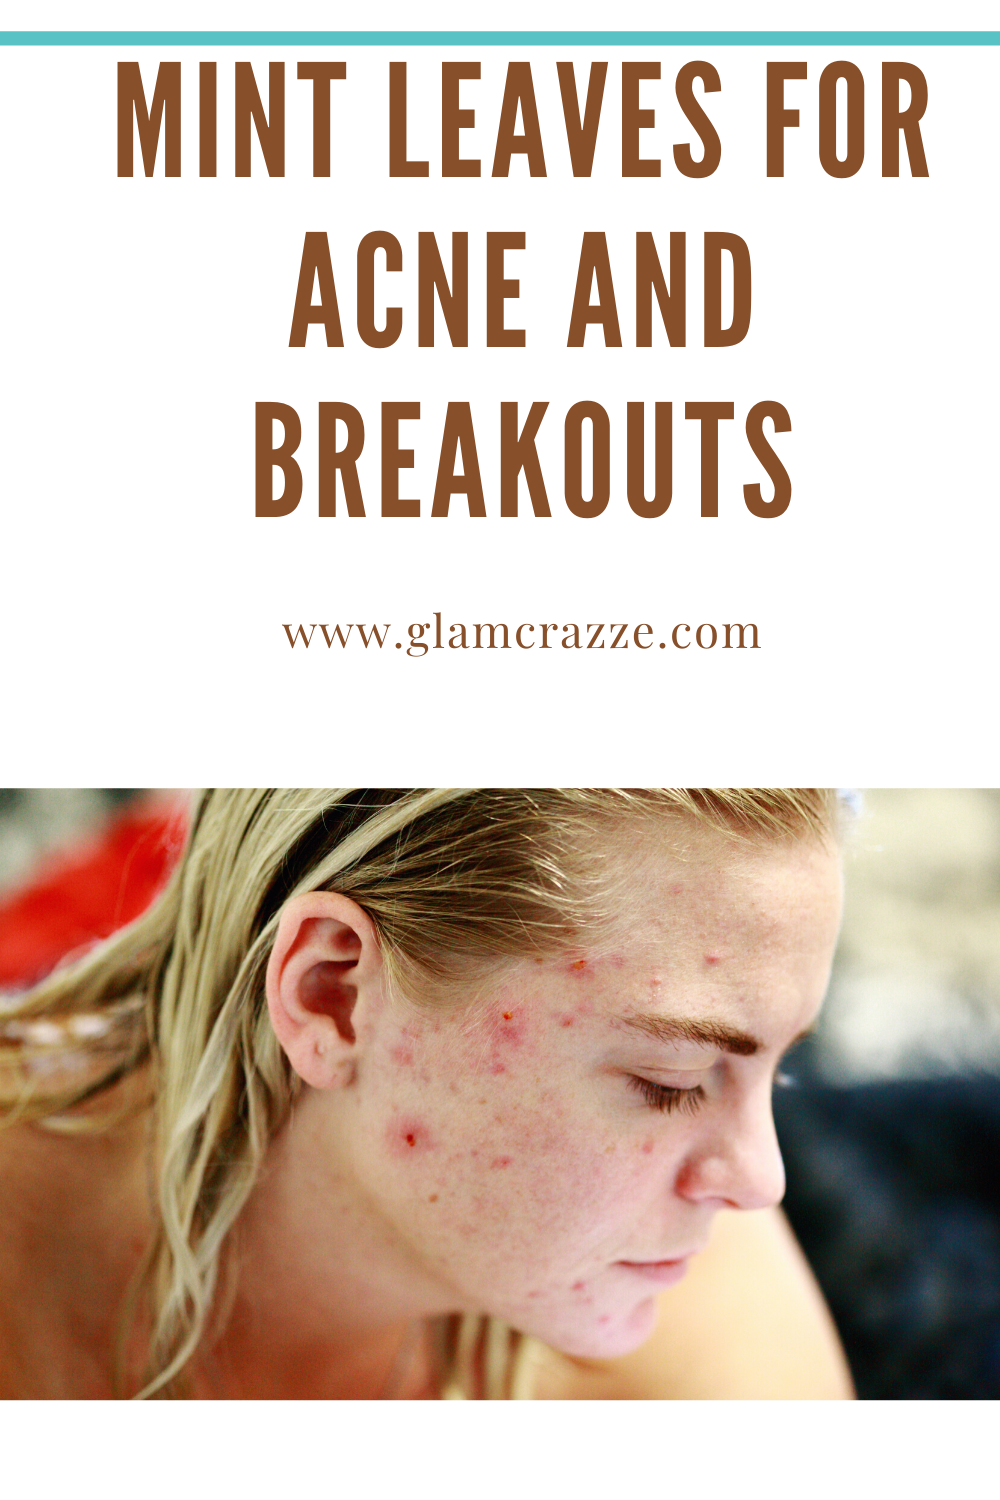 Get rid of acne and achieve clear skin using this home remedies